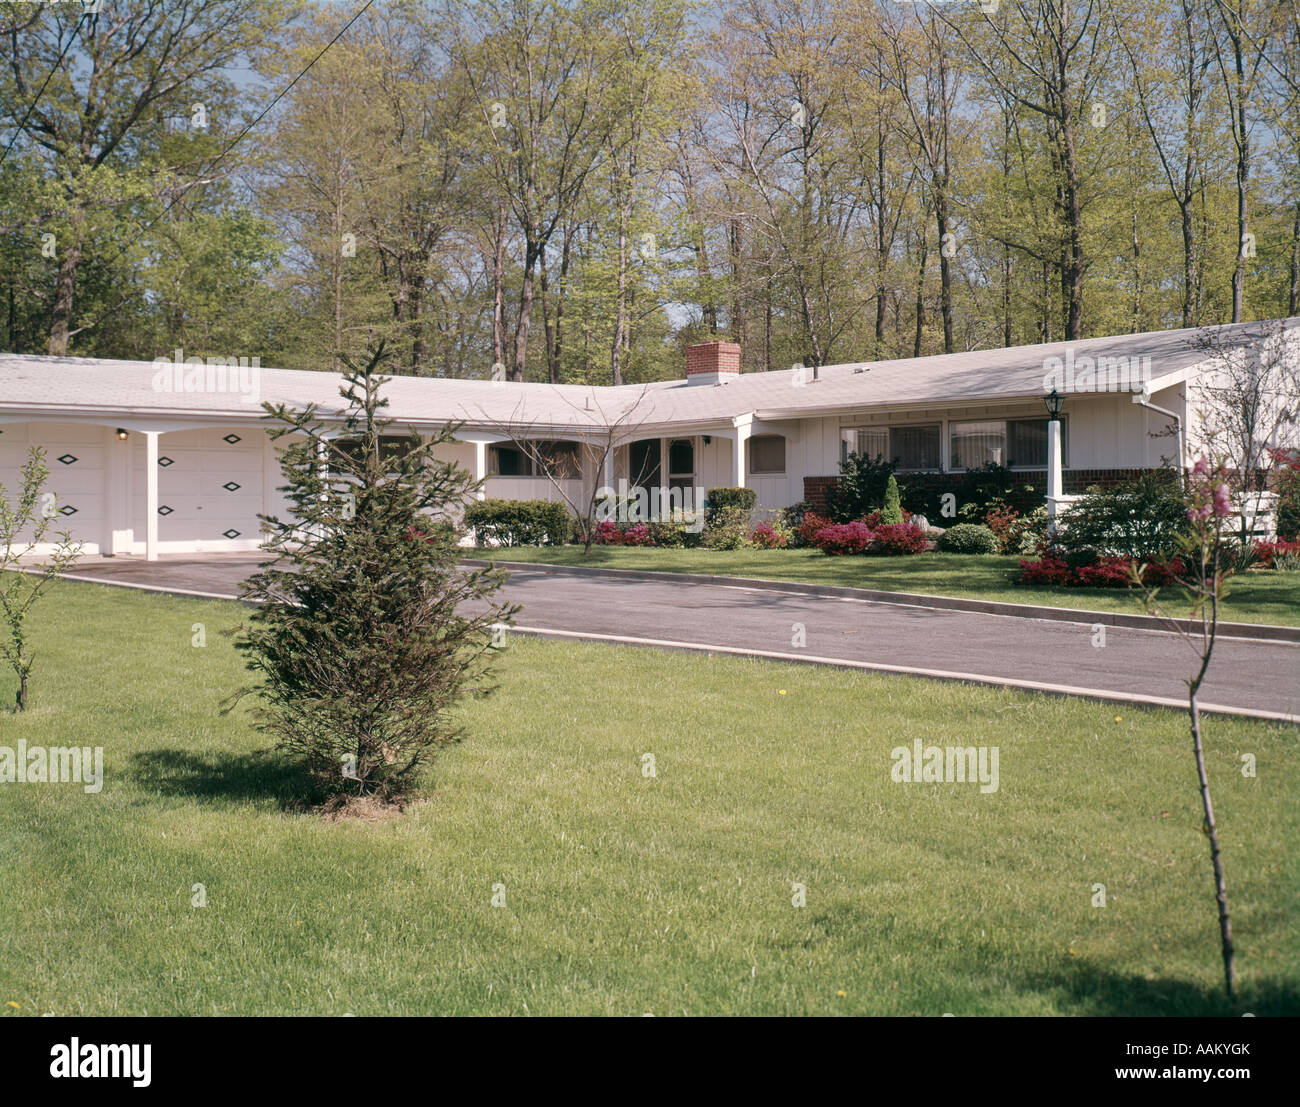 1960s SUBURBAN HOME HOUSE RANCHER DRIVEWAY - Stock Image